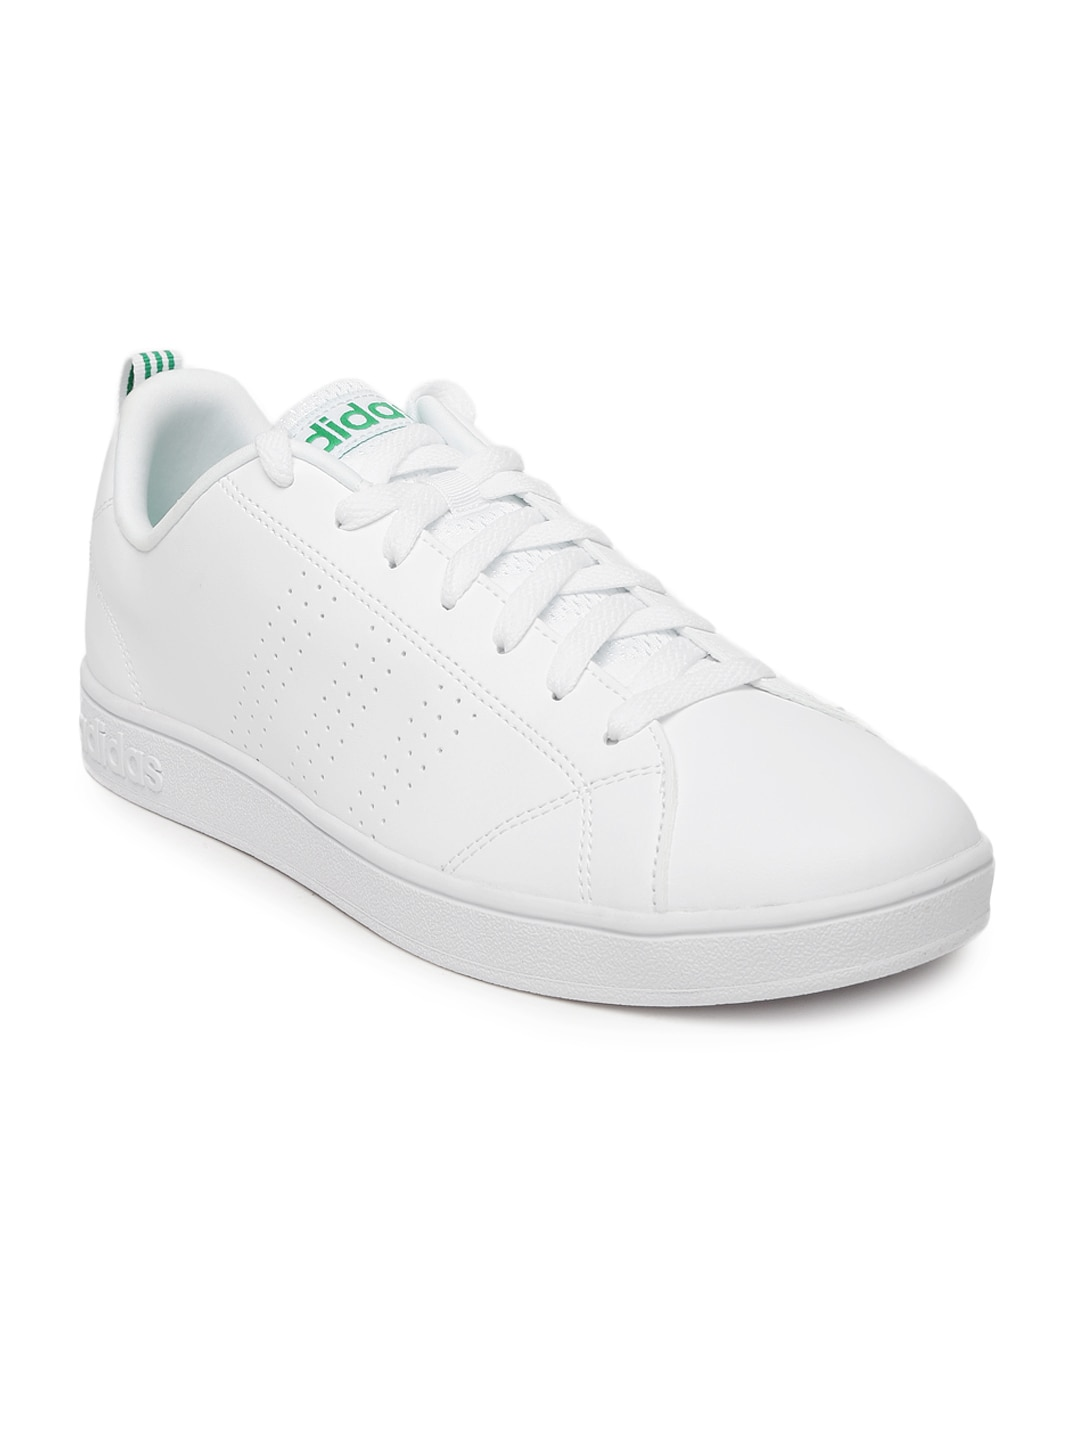 Adidas Neo F99251 Men White Advantage Clean Sneakers Best Price In Cleans Black India